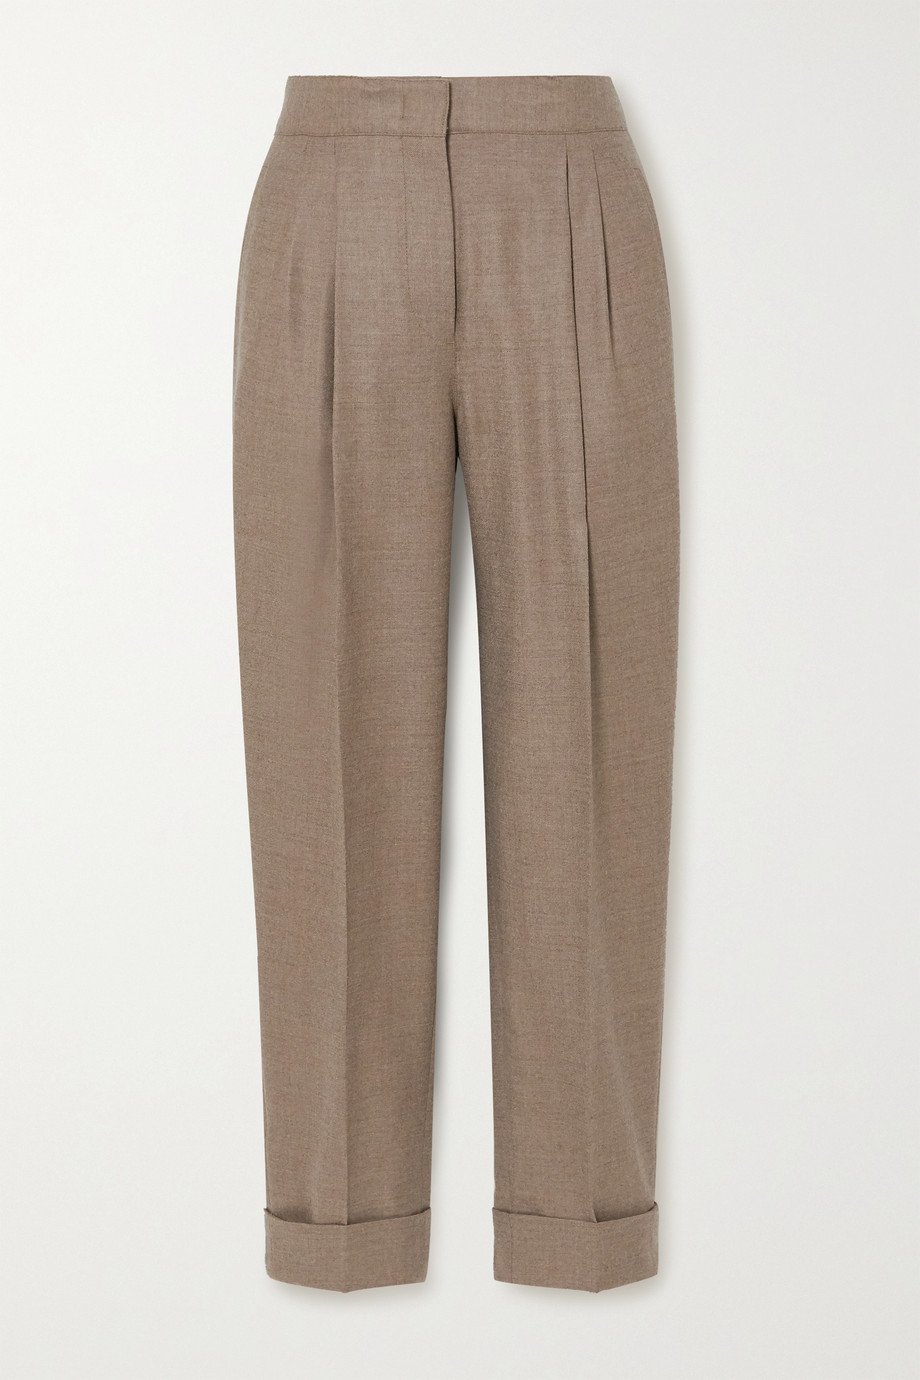 CASASOLA Leblon wool, silk and linen-blend straight-leg pants